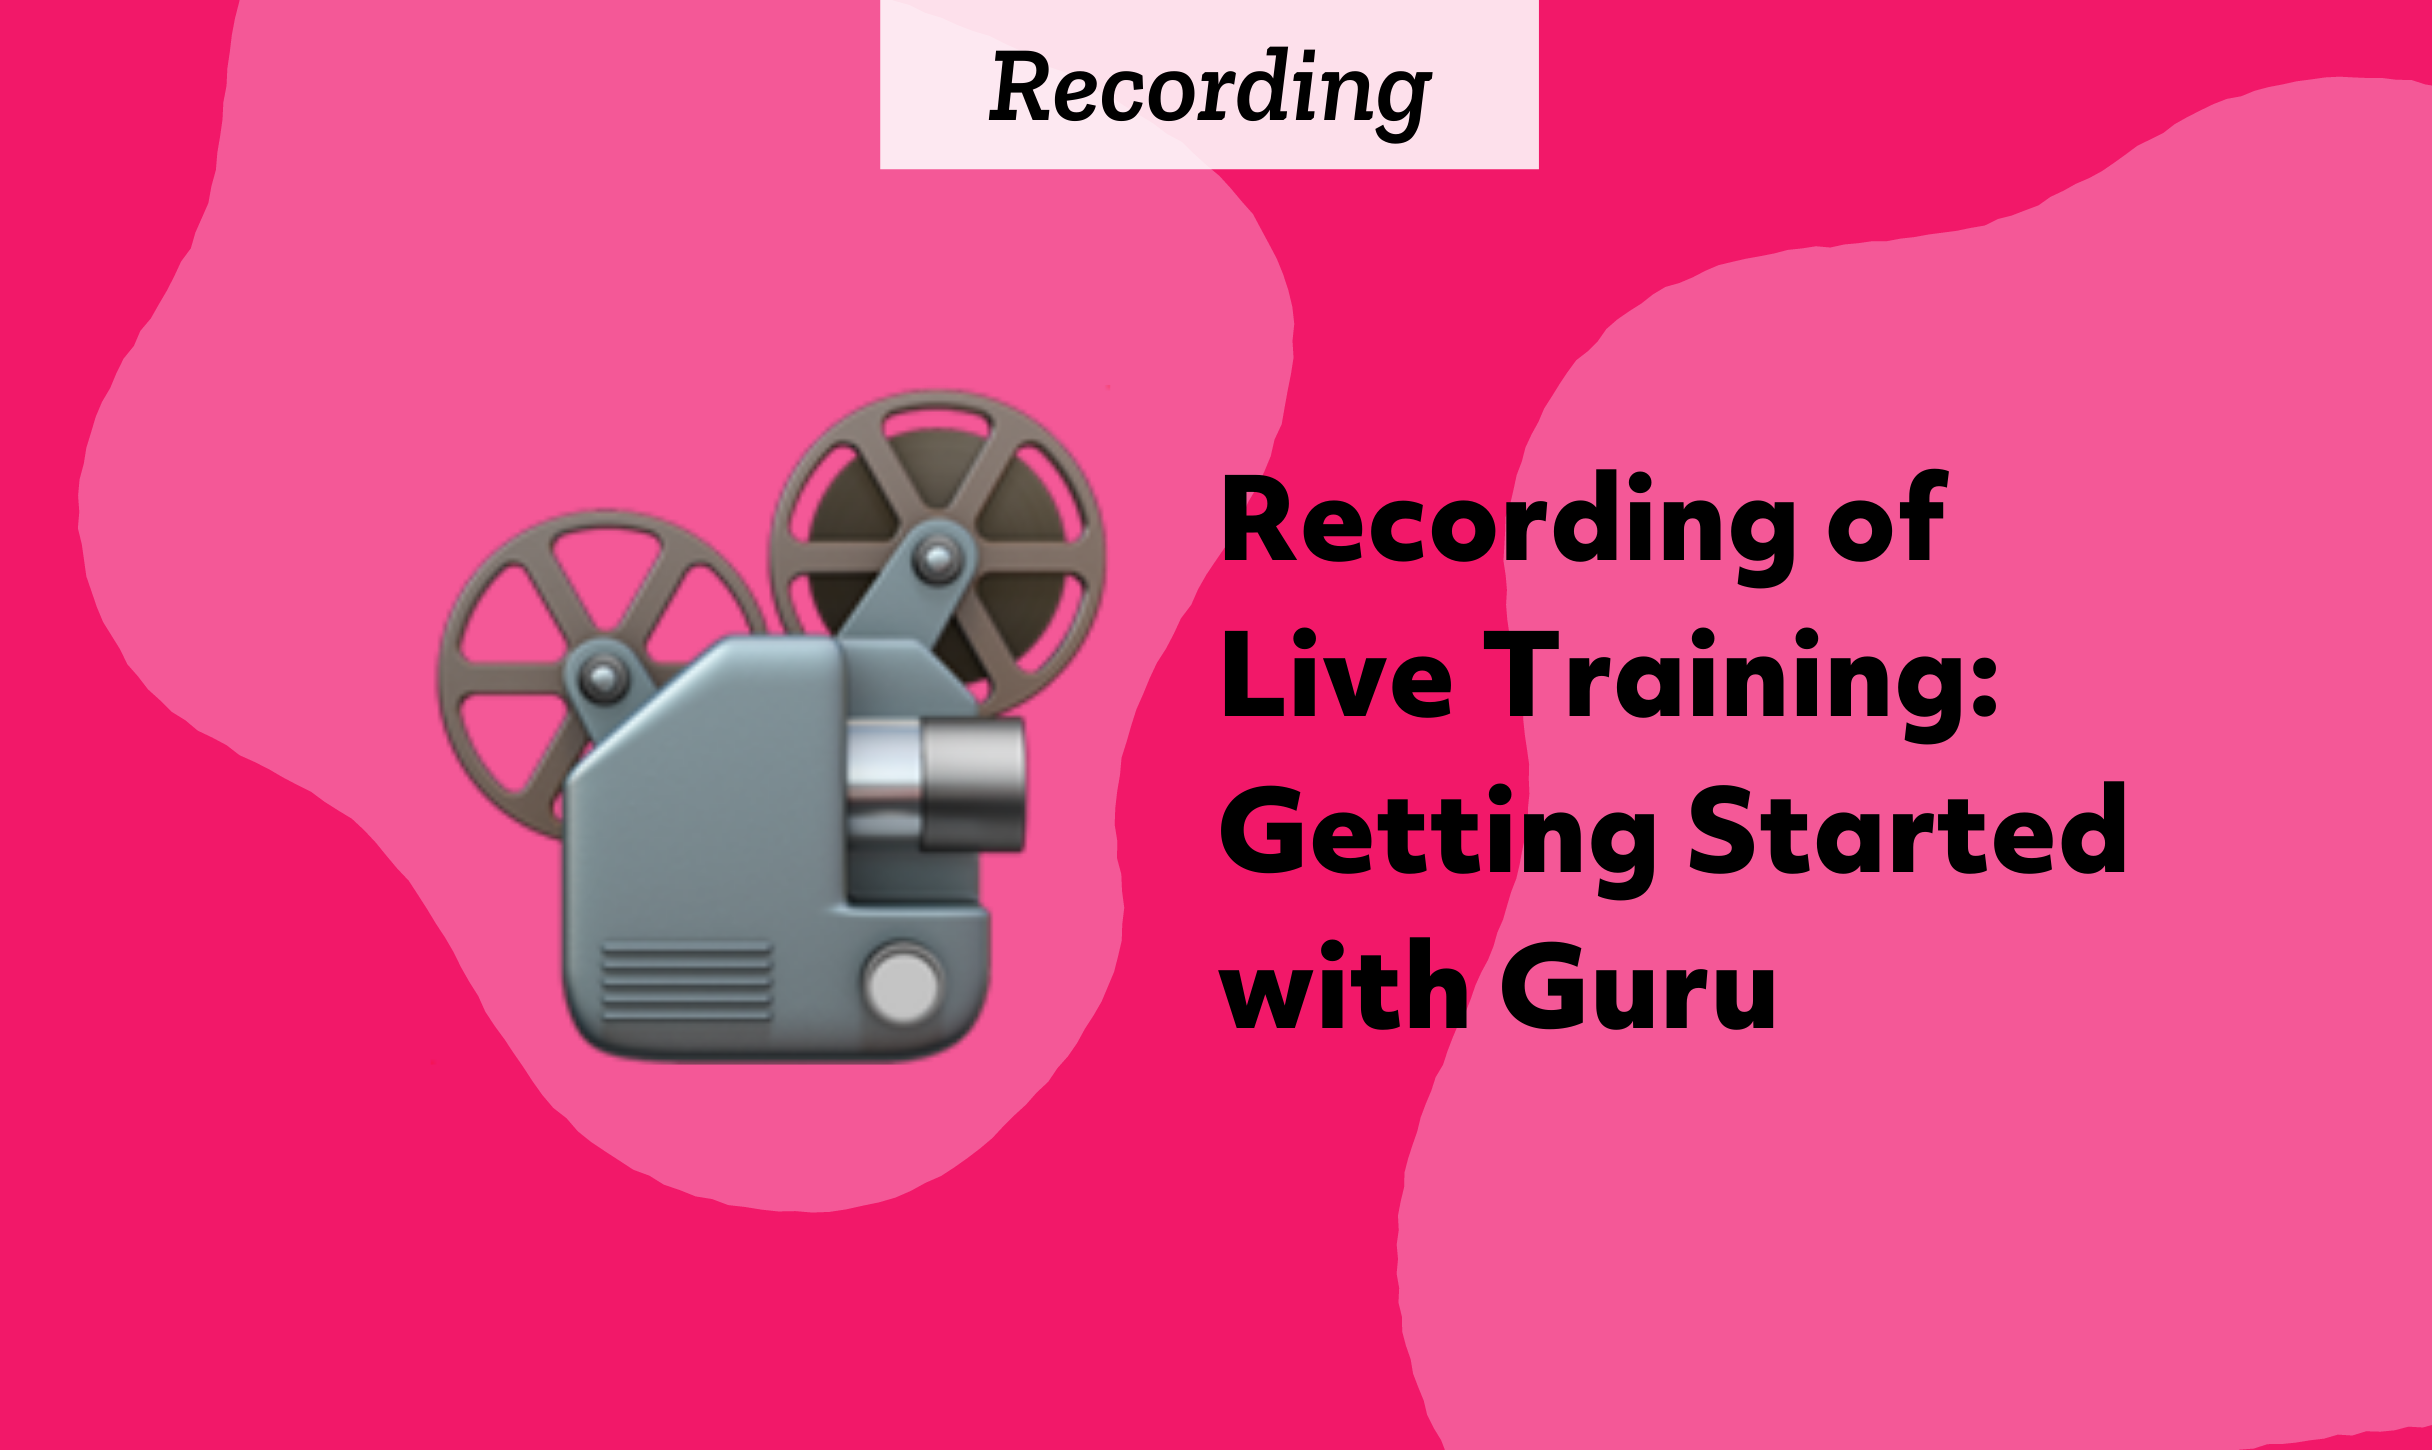 Recording: Getting Started with Guru Live Training Session